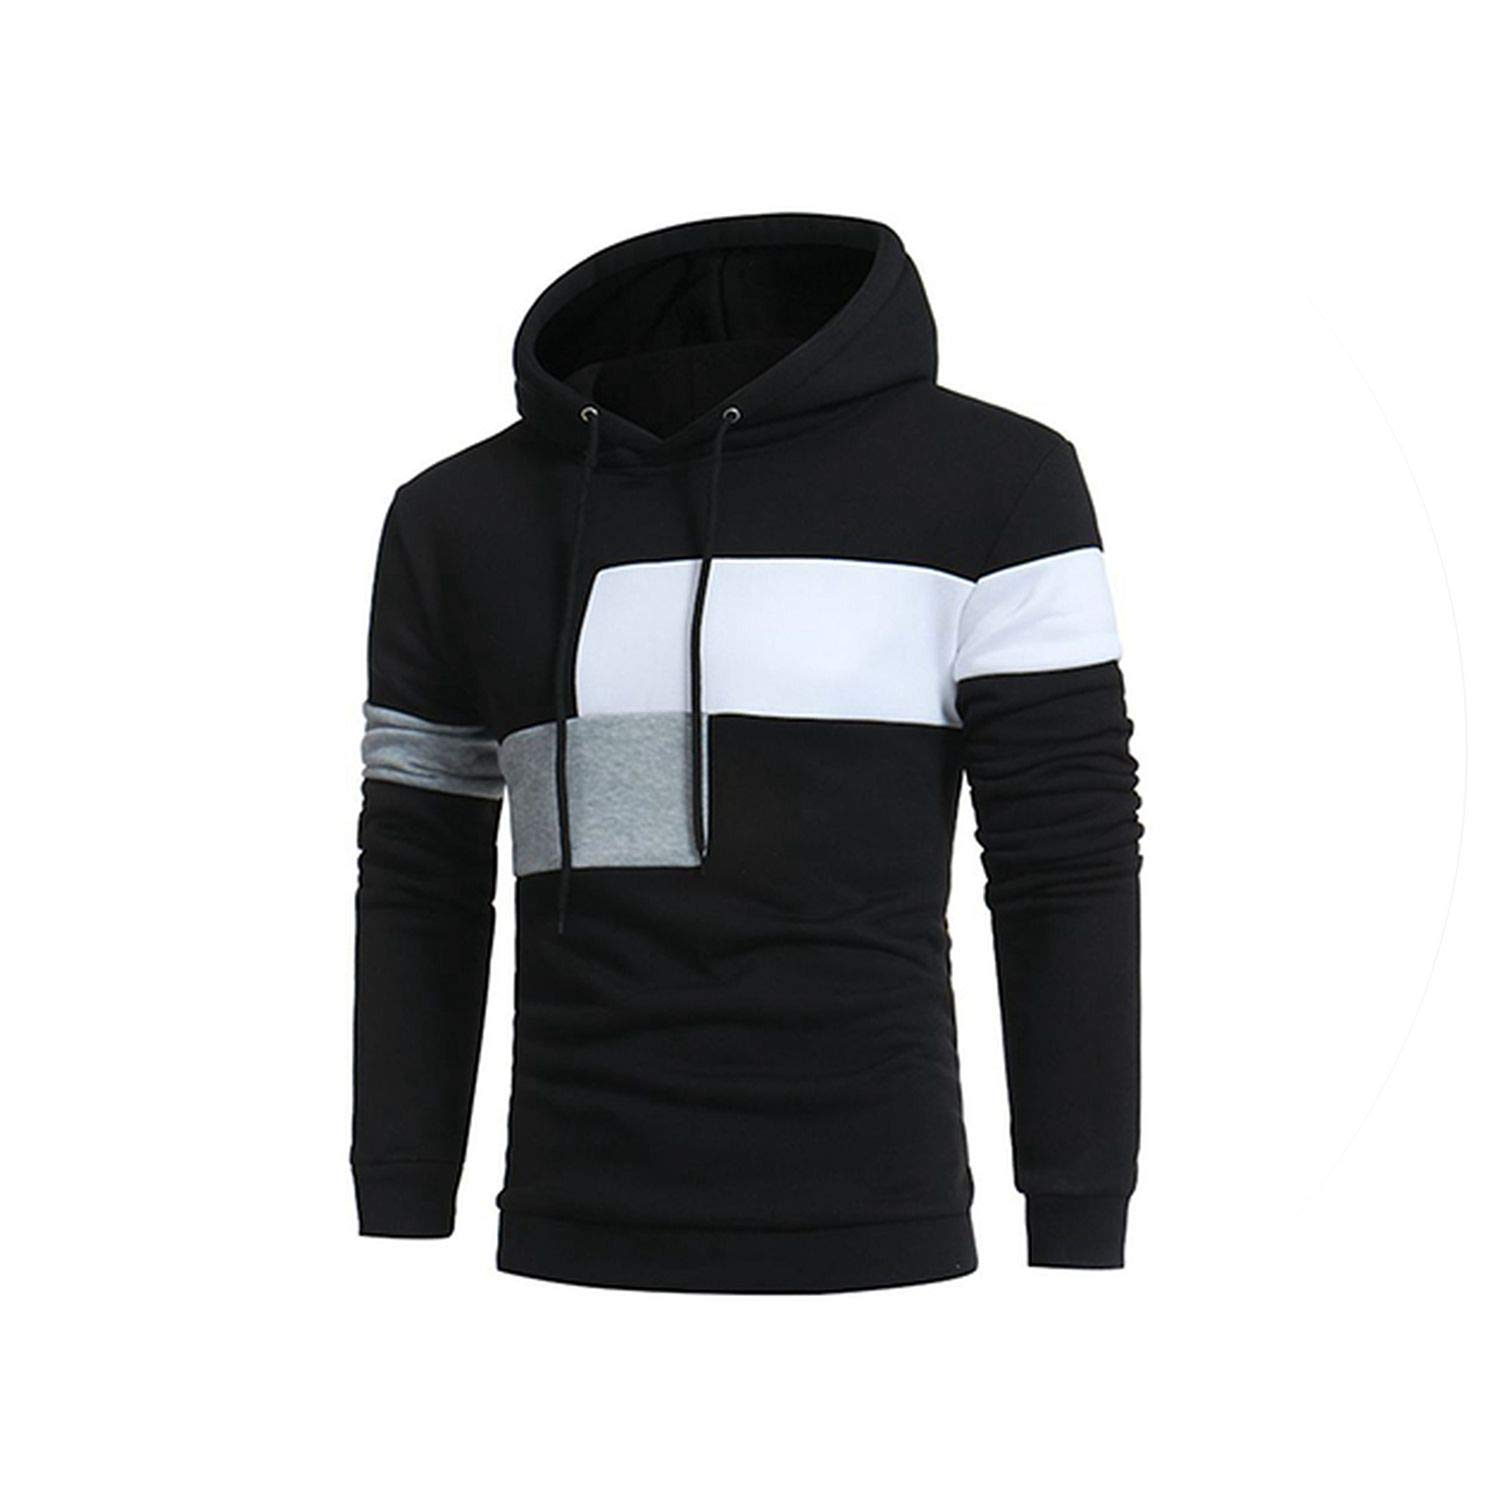 Sex-shop-Vibrators Hoodies MenStriped Hooded Sweatshirt Casual Hip Hop Sudaderas para Hombre at Amazon Womens Clothing store: